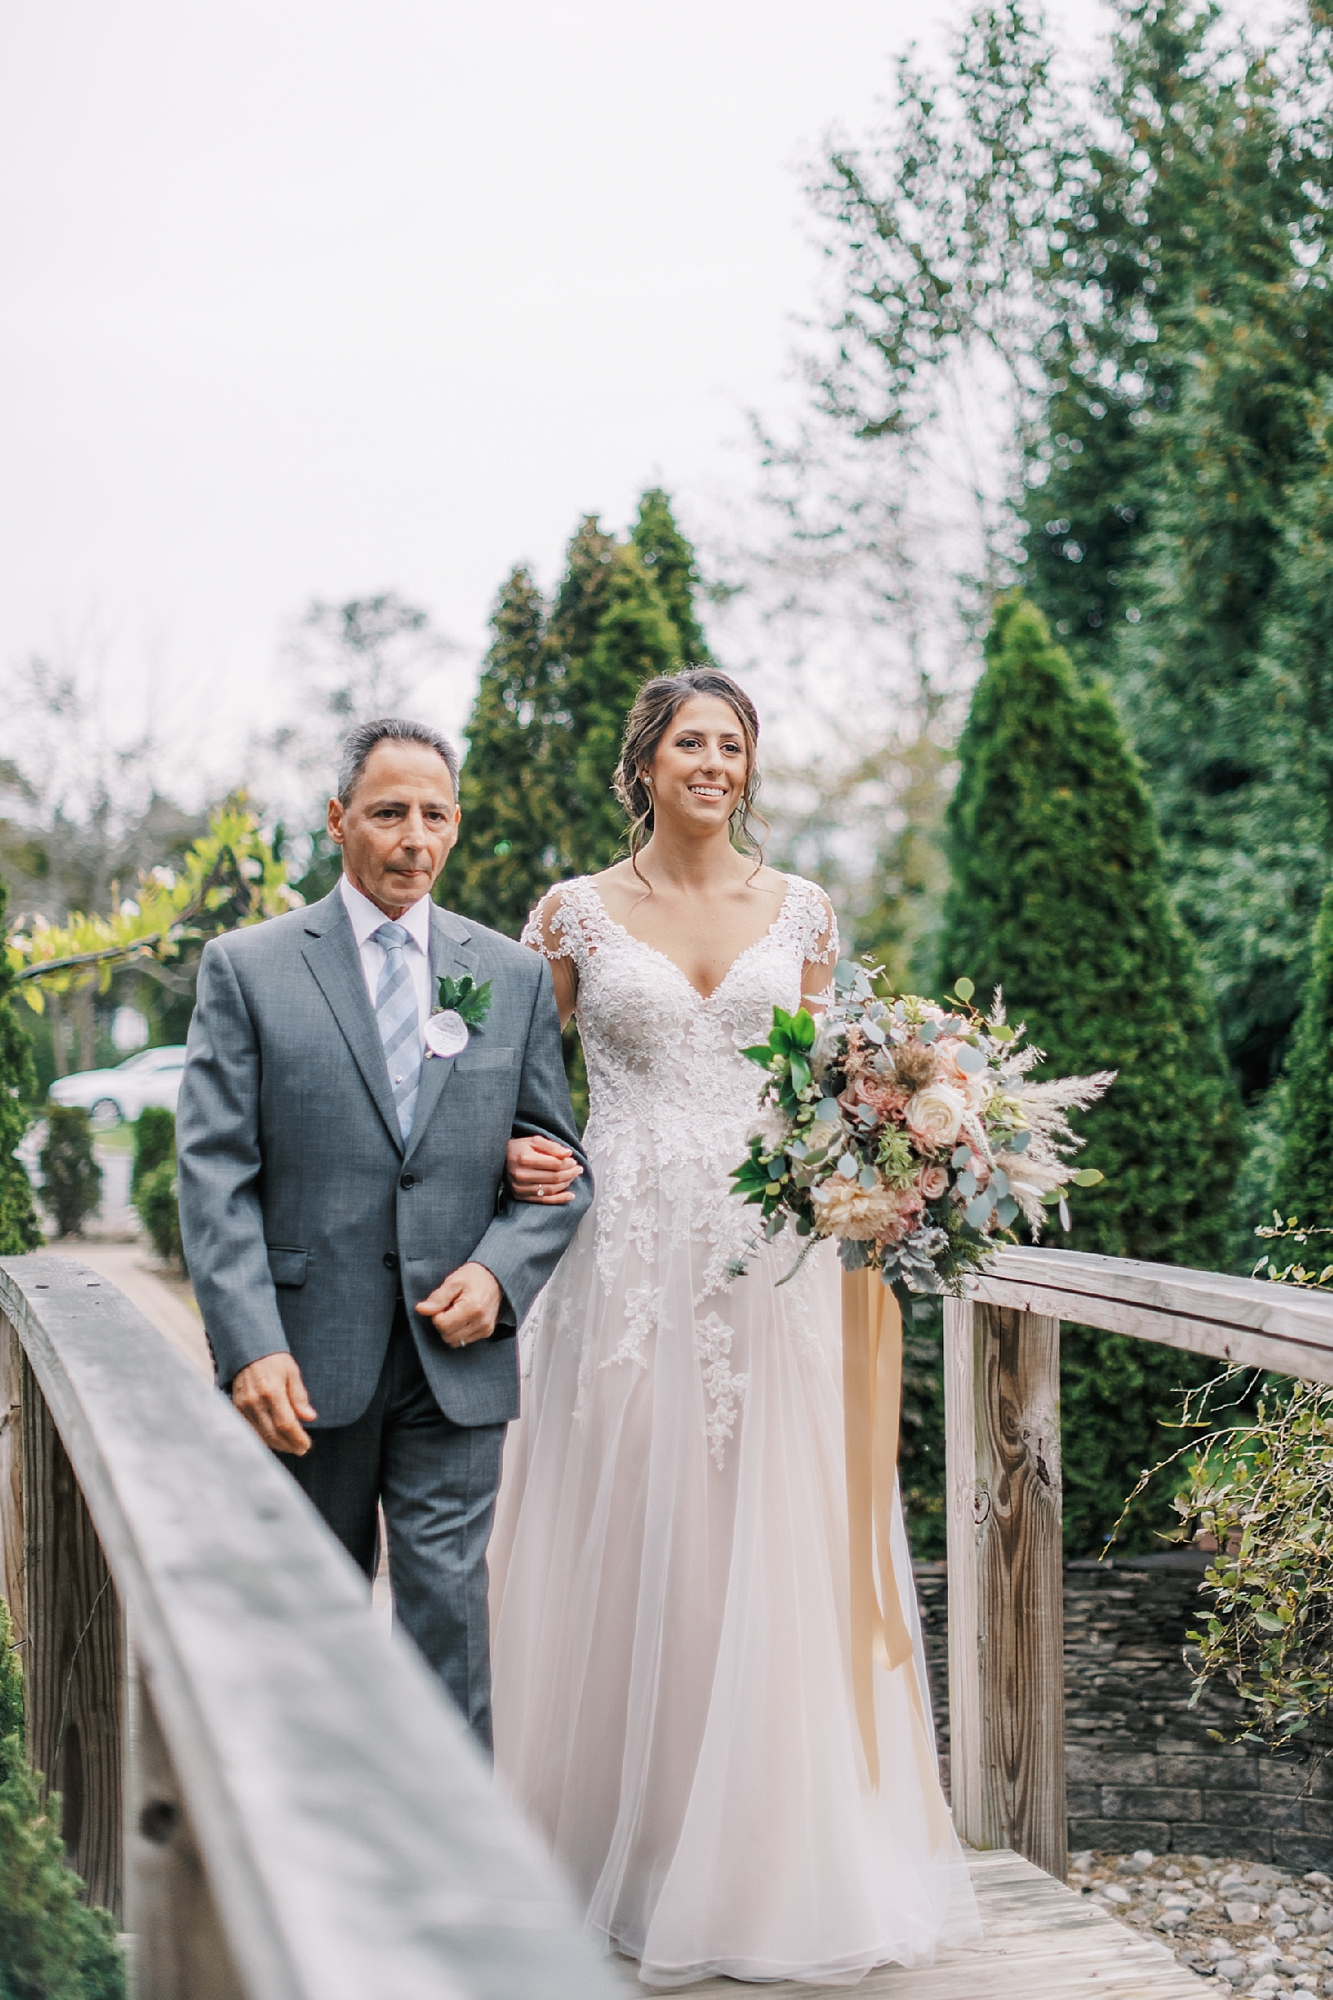 Sweet Garden Wedding Photography Abbie Holmes Estate in Cape May NJ by Magdalena Studios 0067